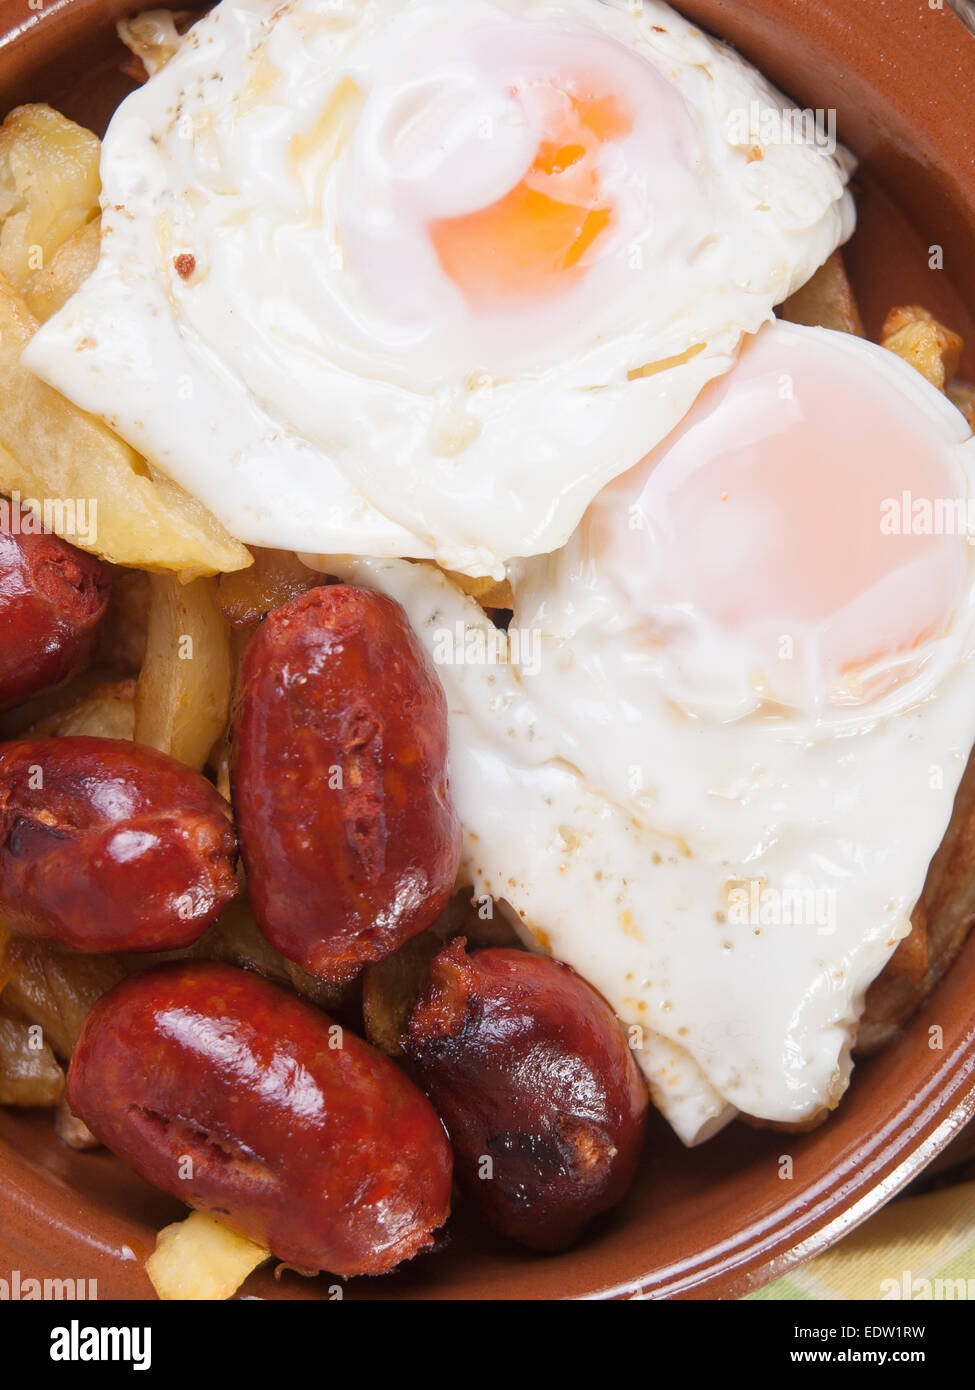 Eggs with french fries and small sausages. A typical spanish dish. - Stock Image